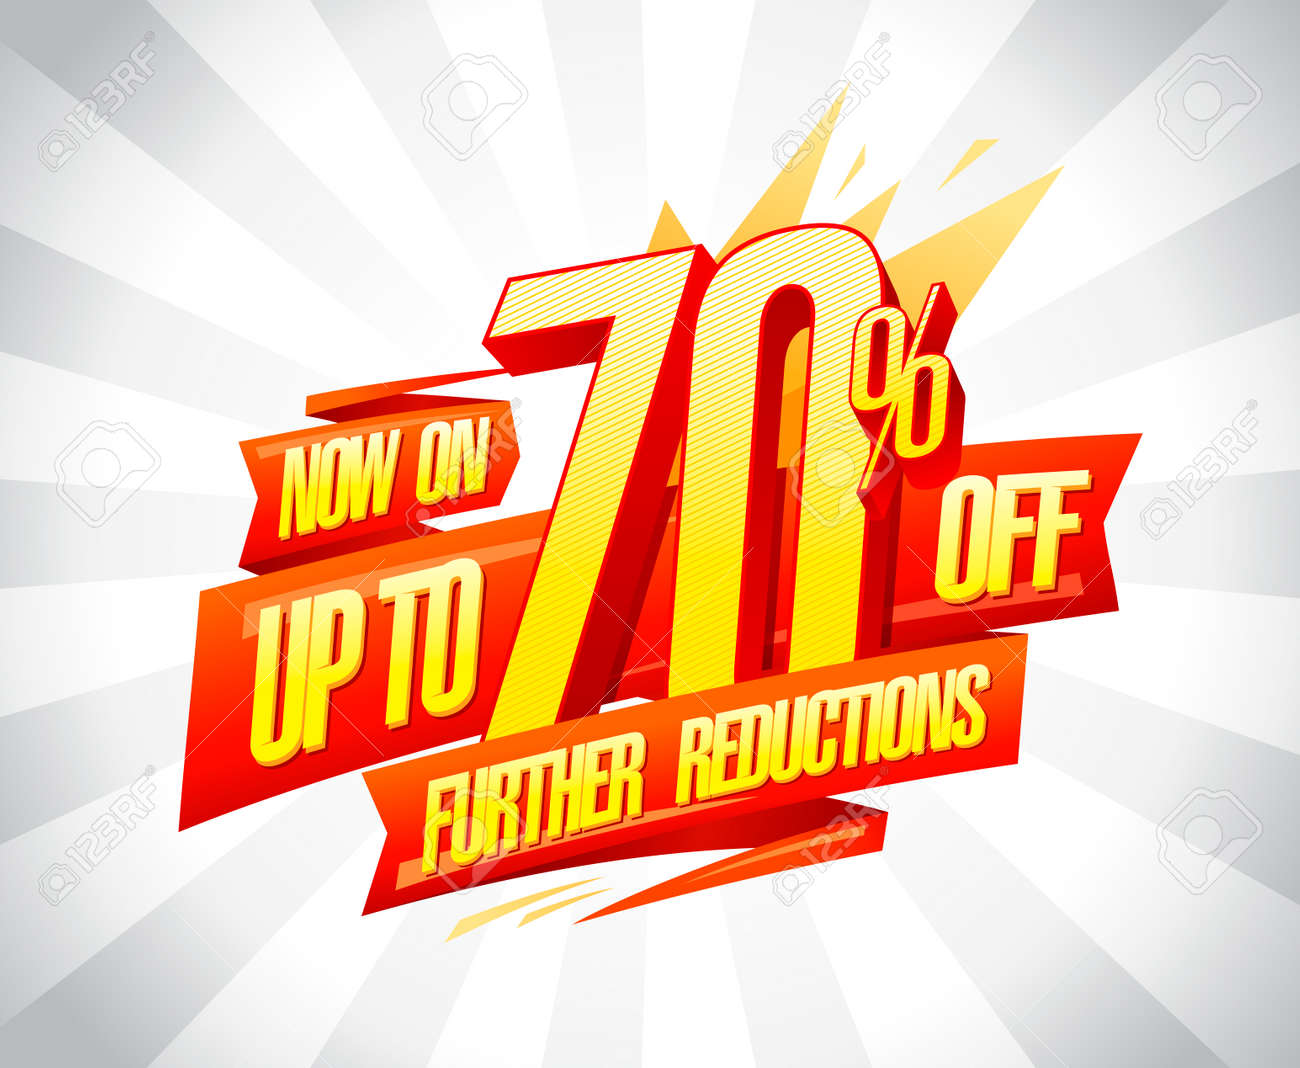 Up to 70% off, further reductions sale poster concept - 133944055